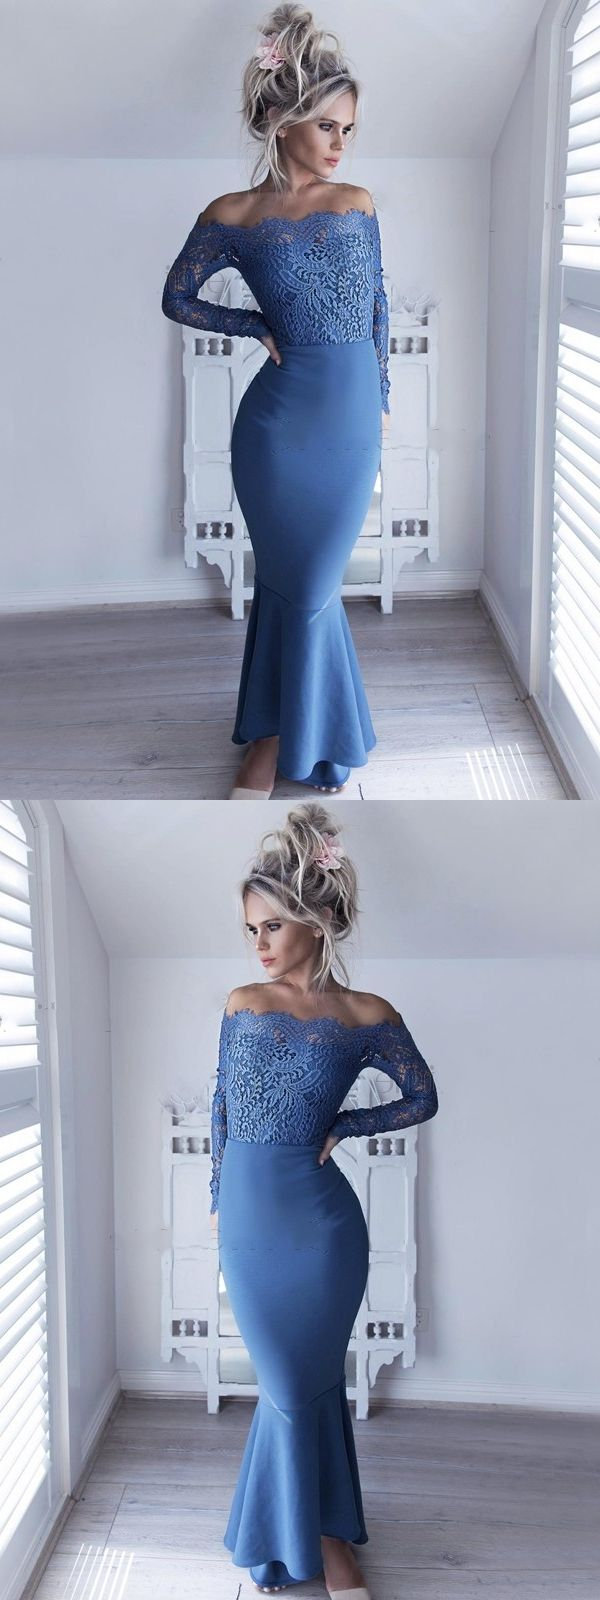 Mermaid offtheshoulder long sleeves high low blue prom dress with